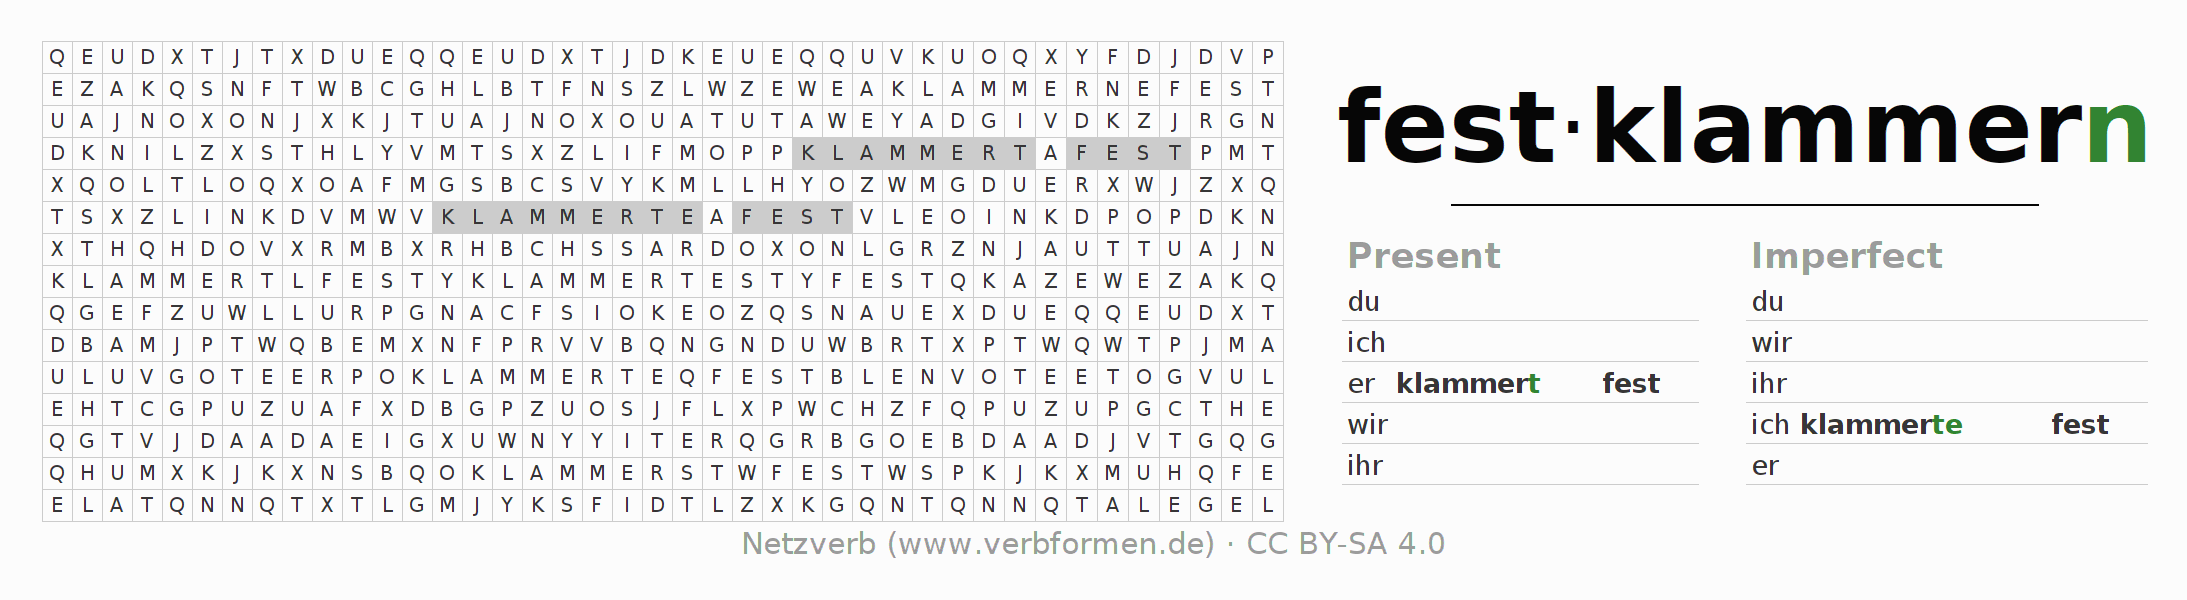 Word search puzzle for the conjugation of the verb festklammern